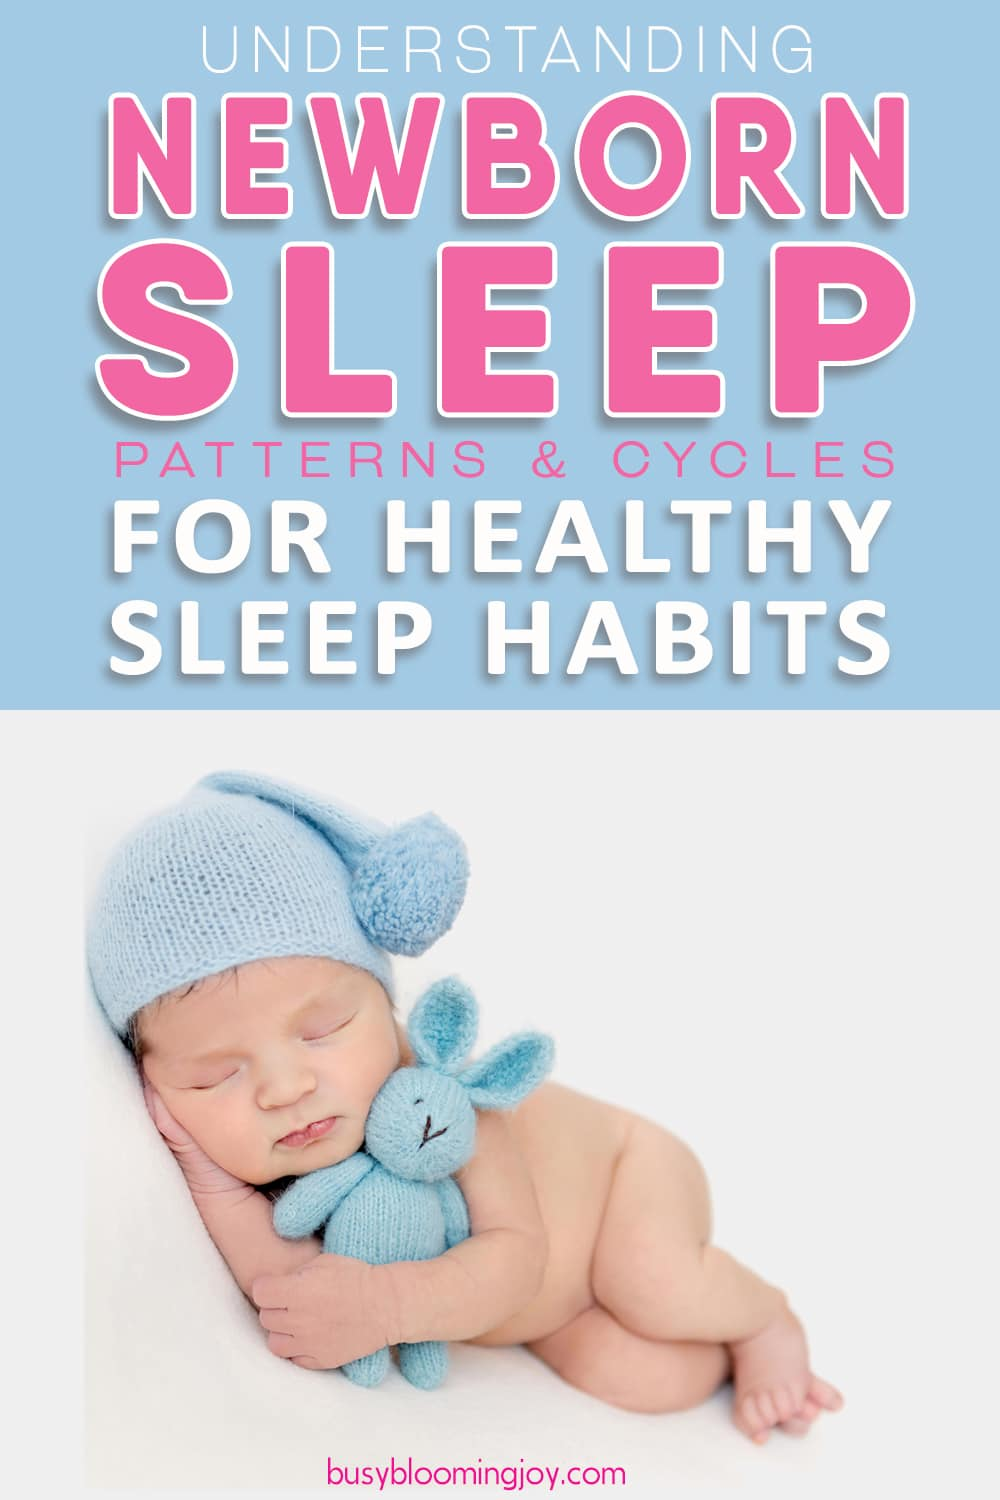 Newborn sleep patterns and cycles